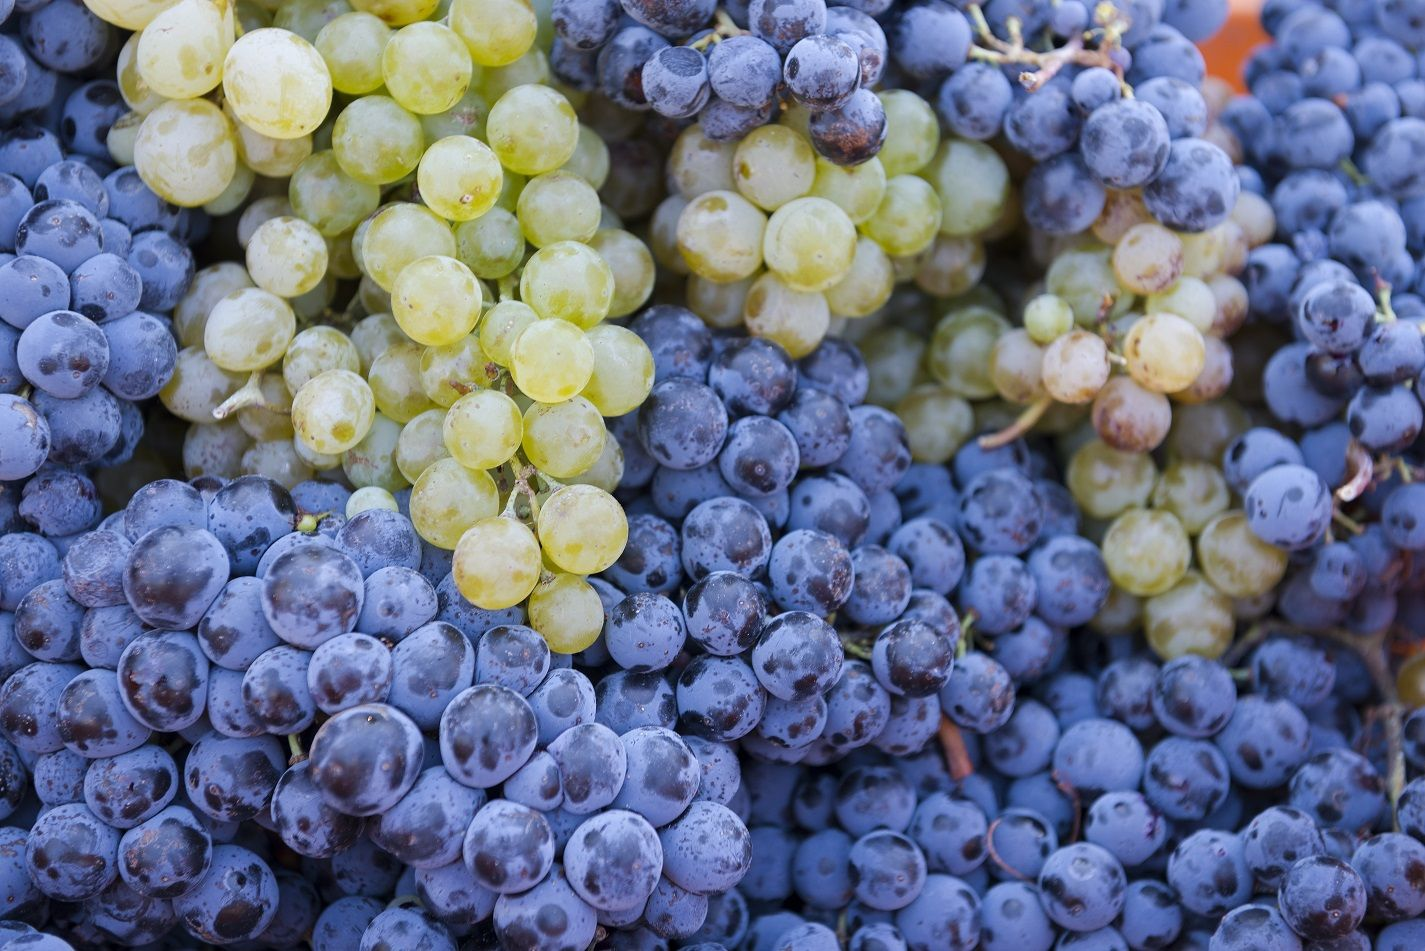 Enhancing tropical fruit avour in Chardonnay and Shiraz through foliar nutrient sprays